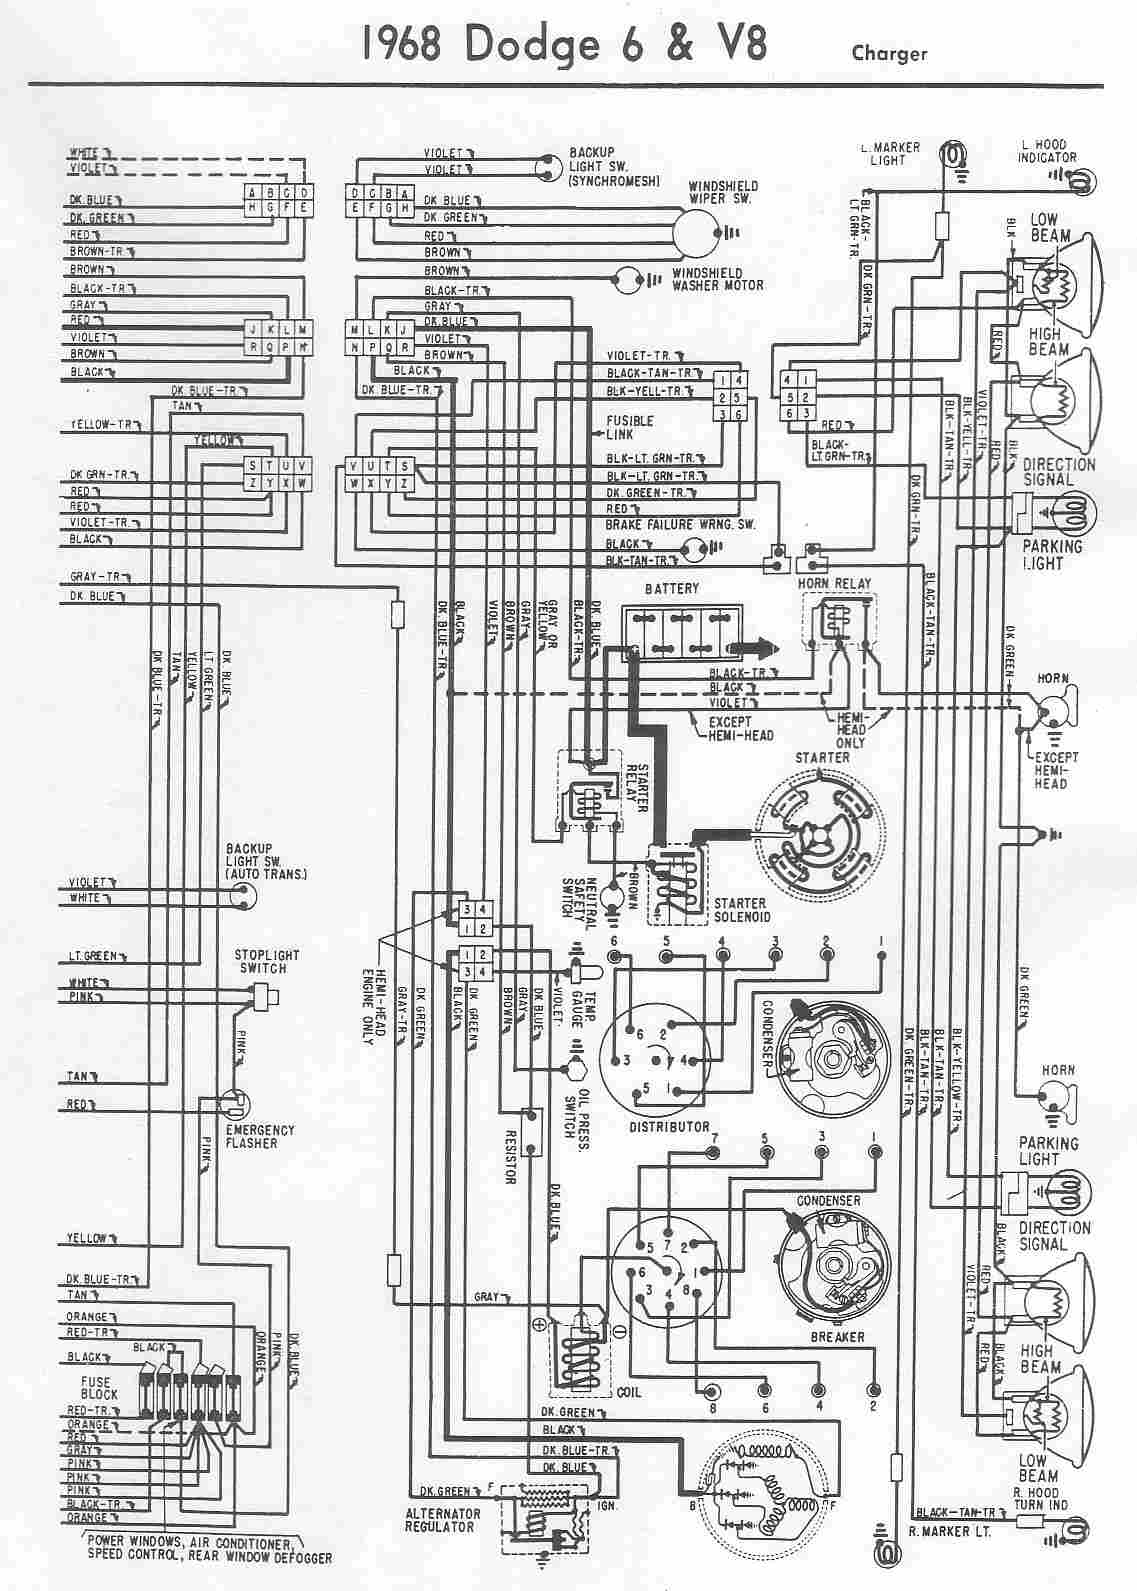 2013 dodge challenger underhood wiring diagram wiring diagram for you lesco wiring diagram 1970 dodge challenger [ 1137 x 1591 Pixel ]